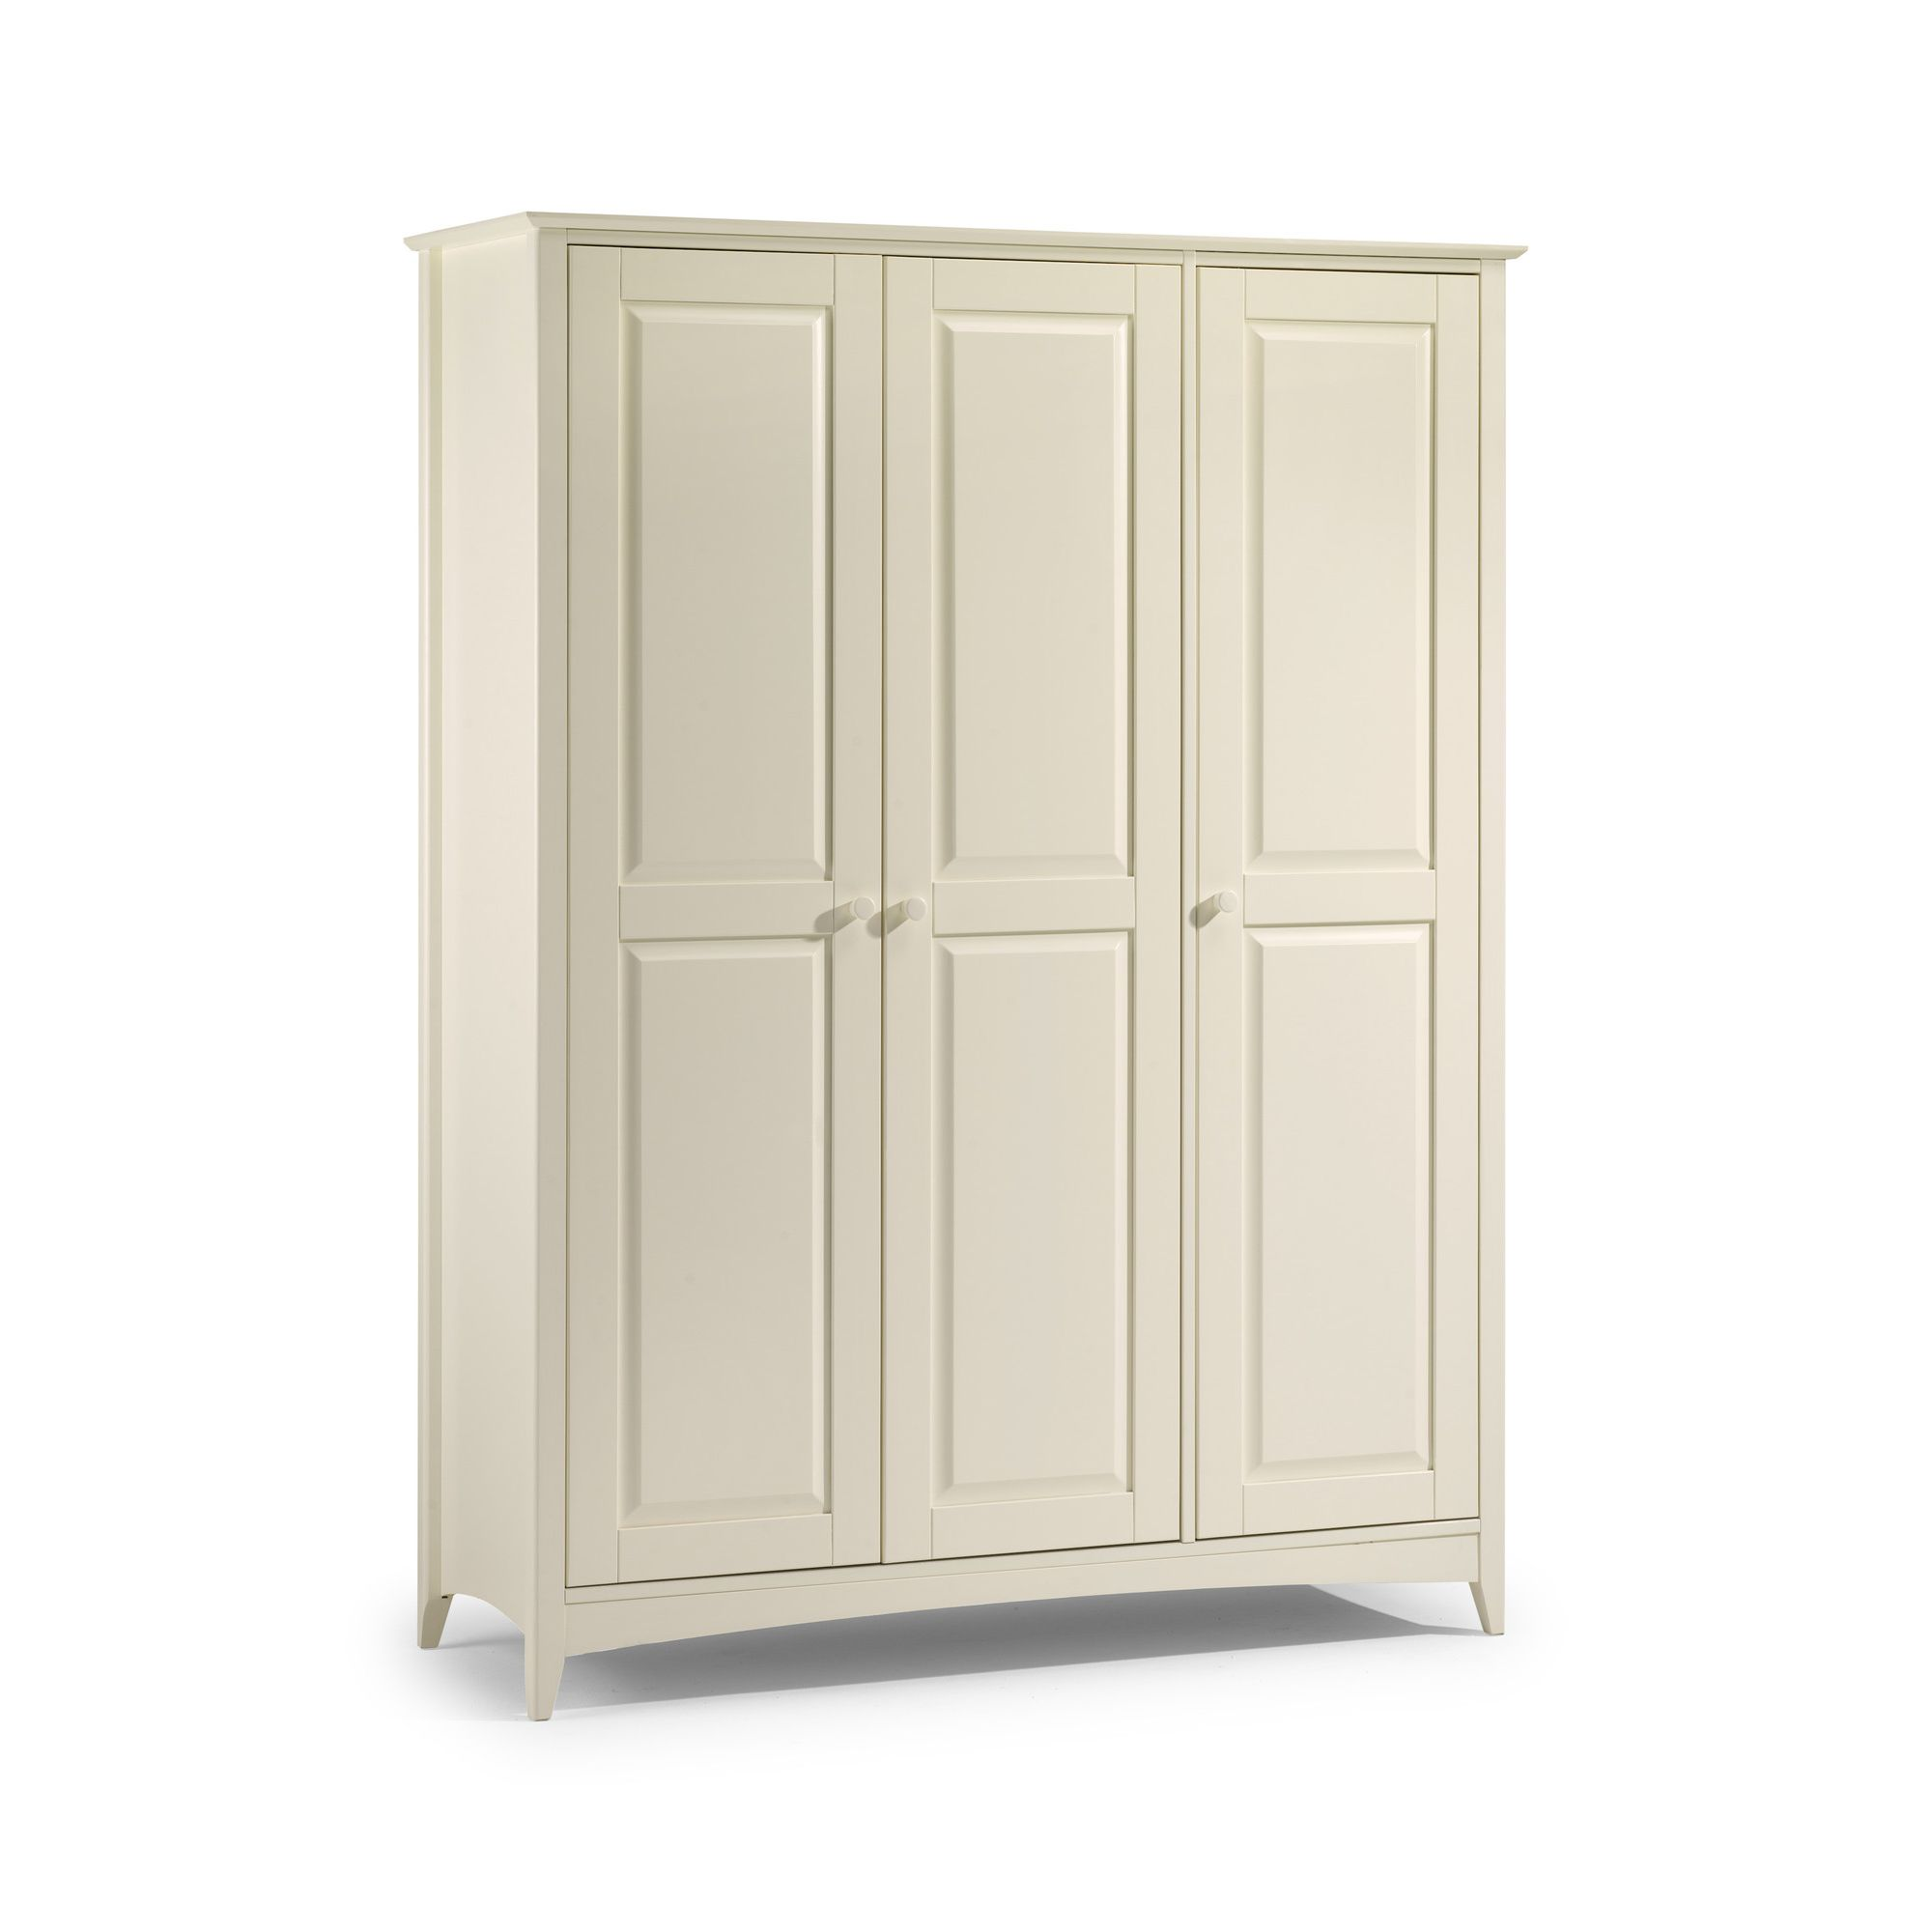 Julian Bowen Cameo 3 Door Wardrobe in Off White Lacquer at Tesco Direct